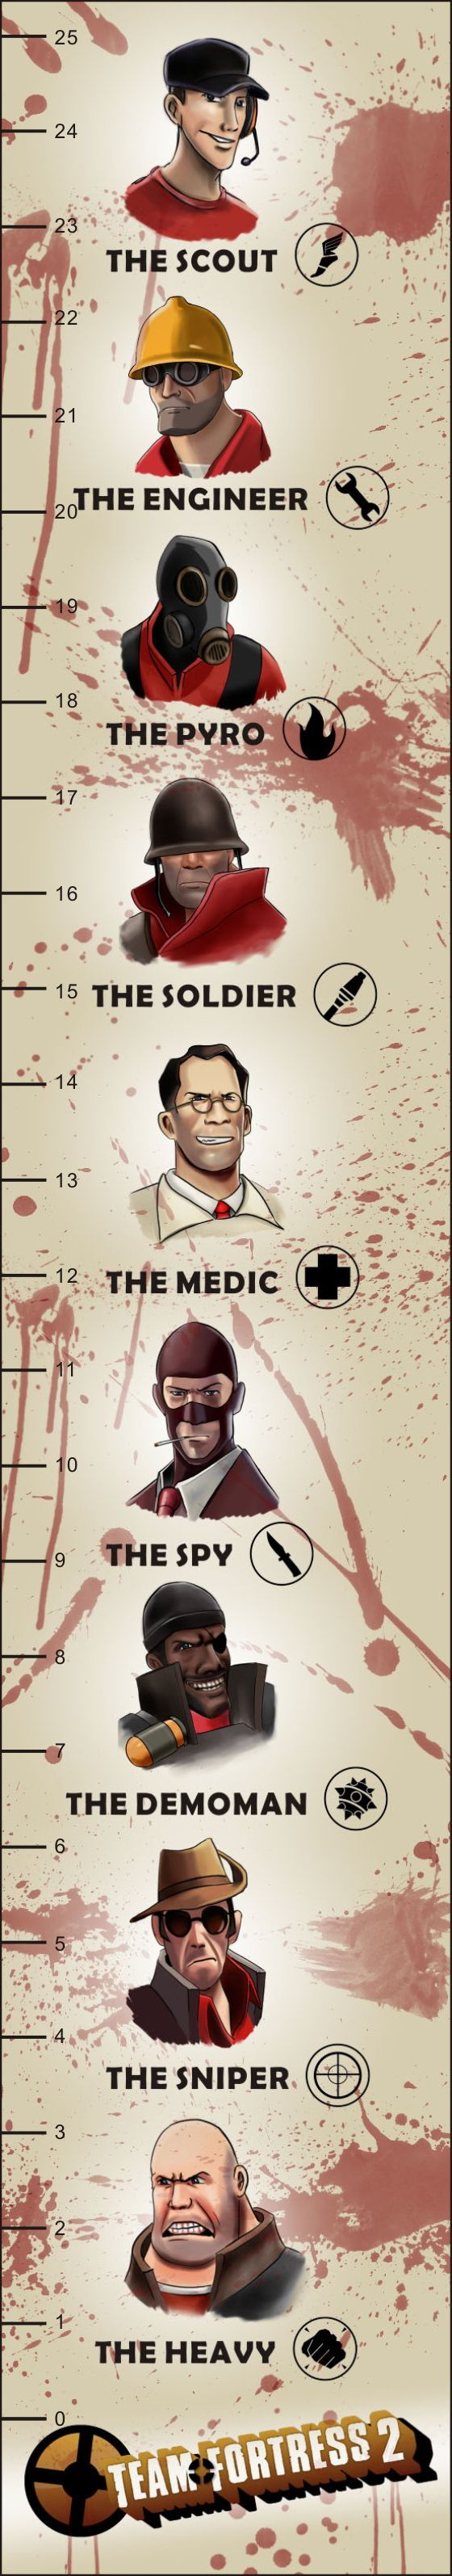 Team Fortress 2: The Book Mark by Onosaka-Yuha